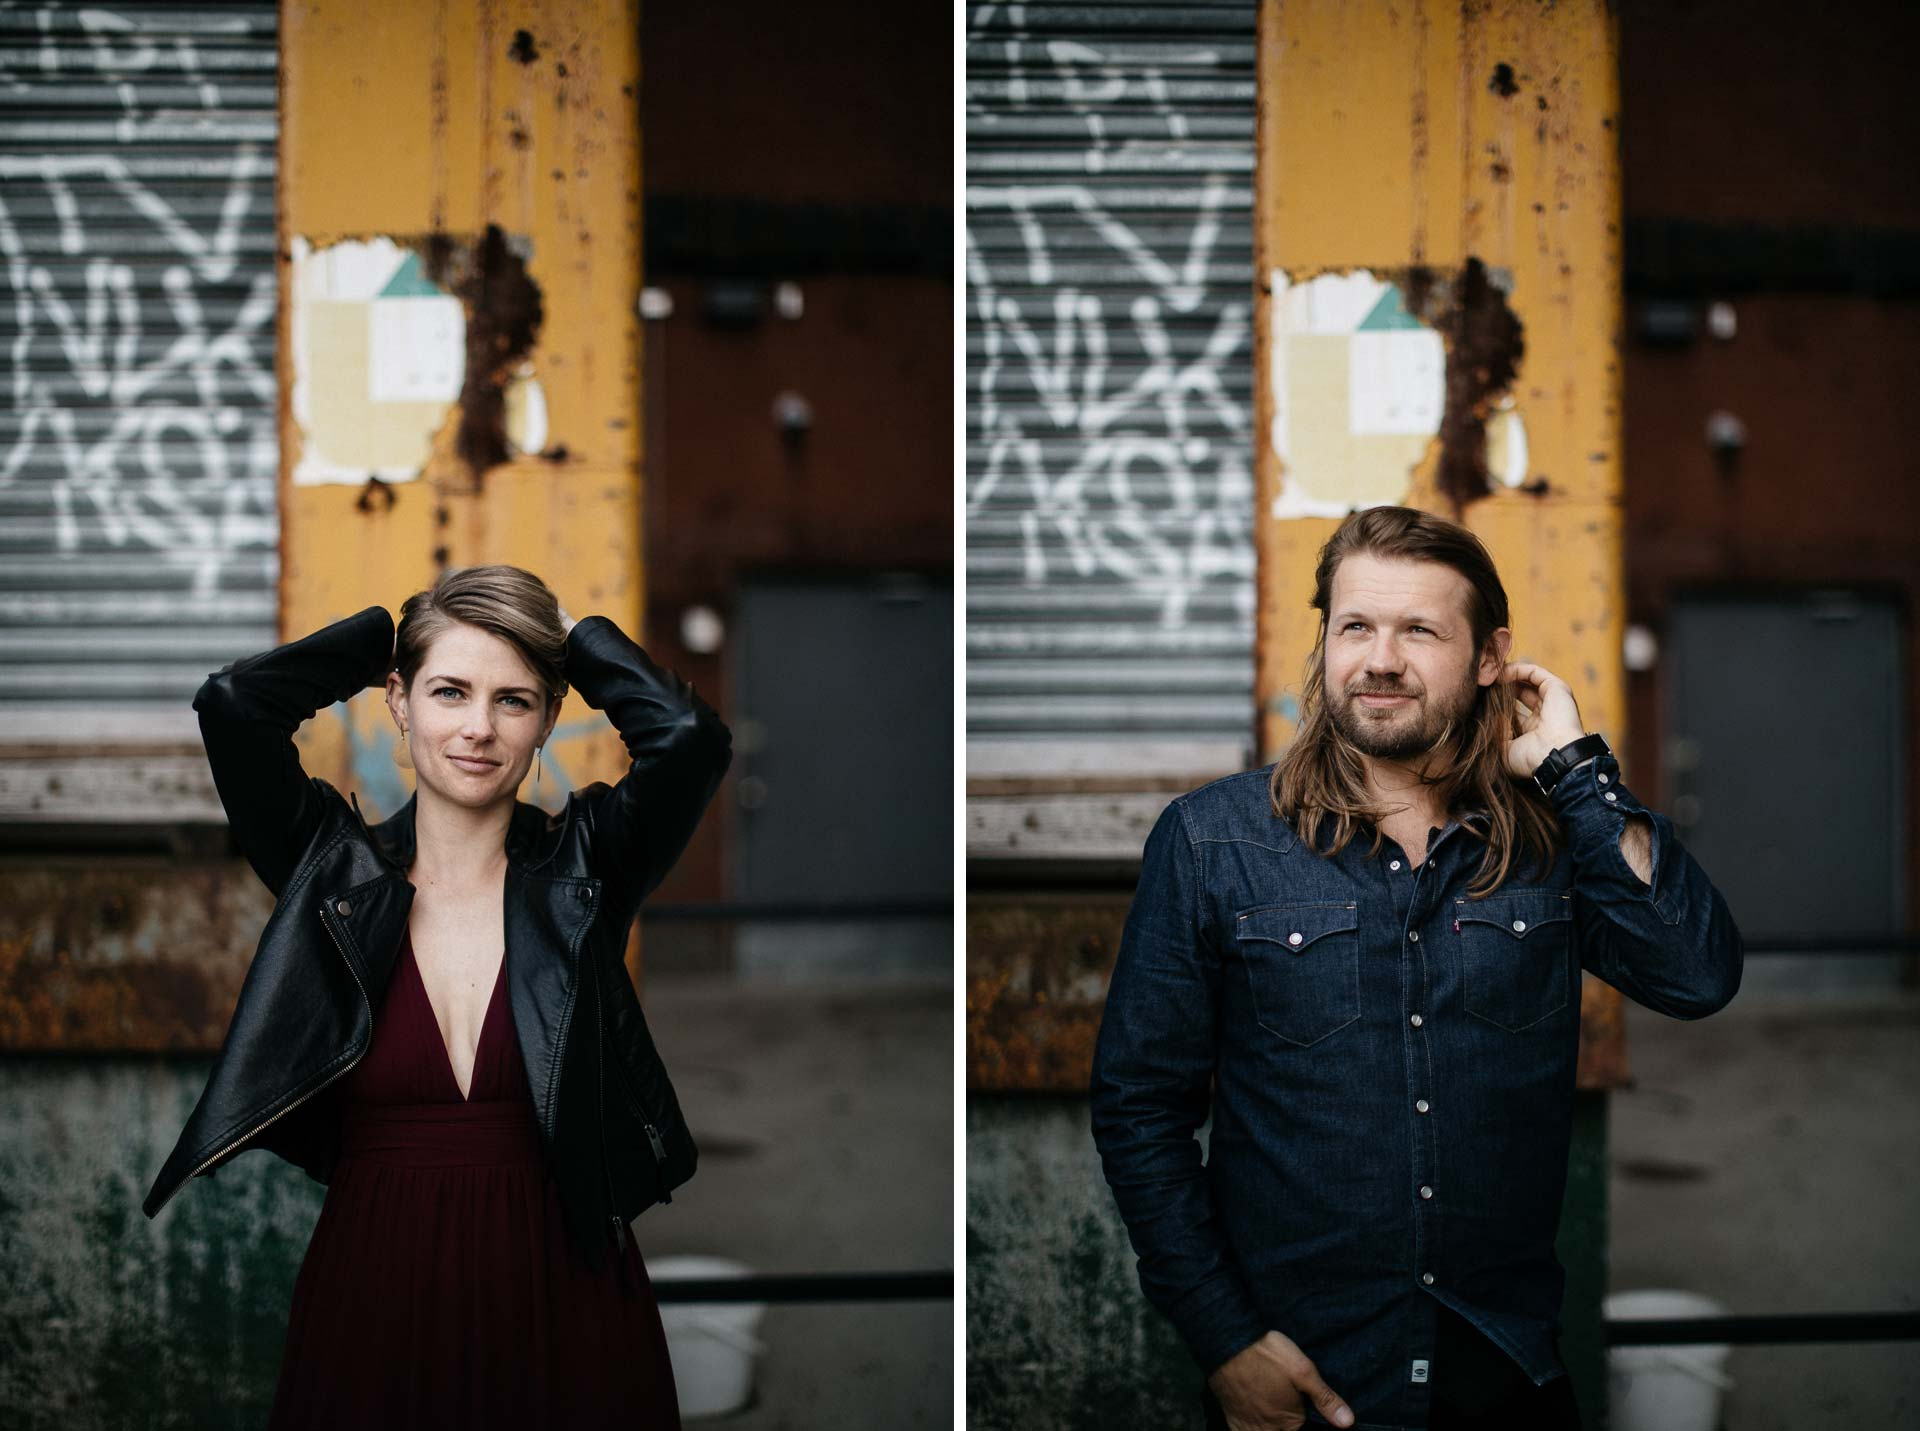 Engagement Session in Brooklyn by Jean-Laurent Gaudy Photography